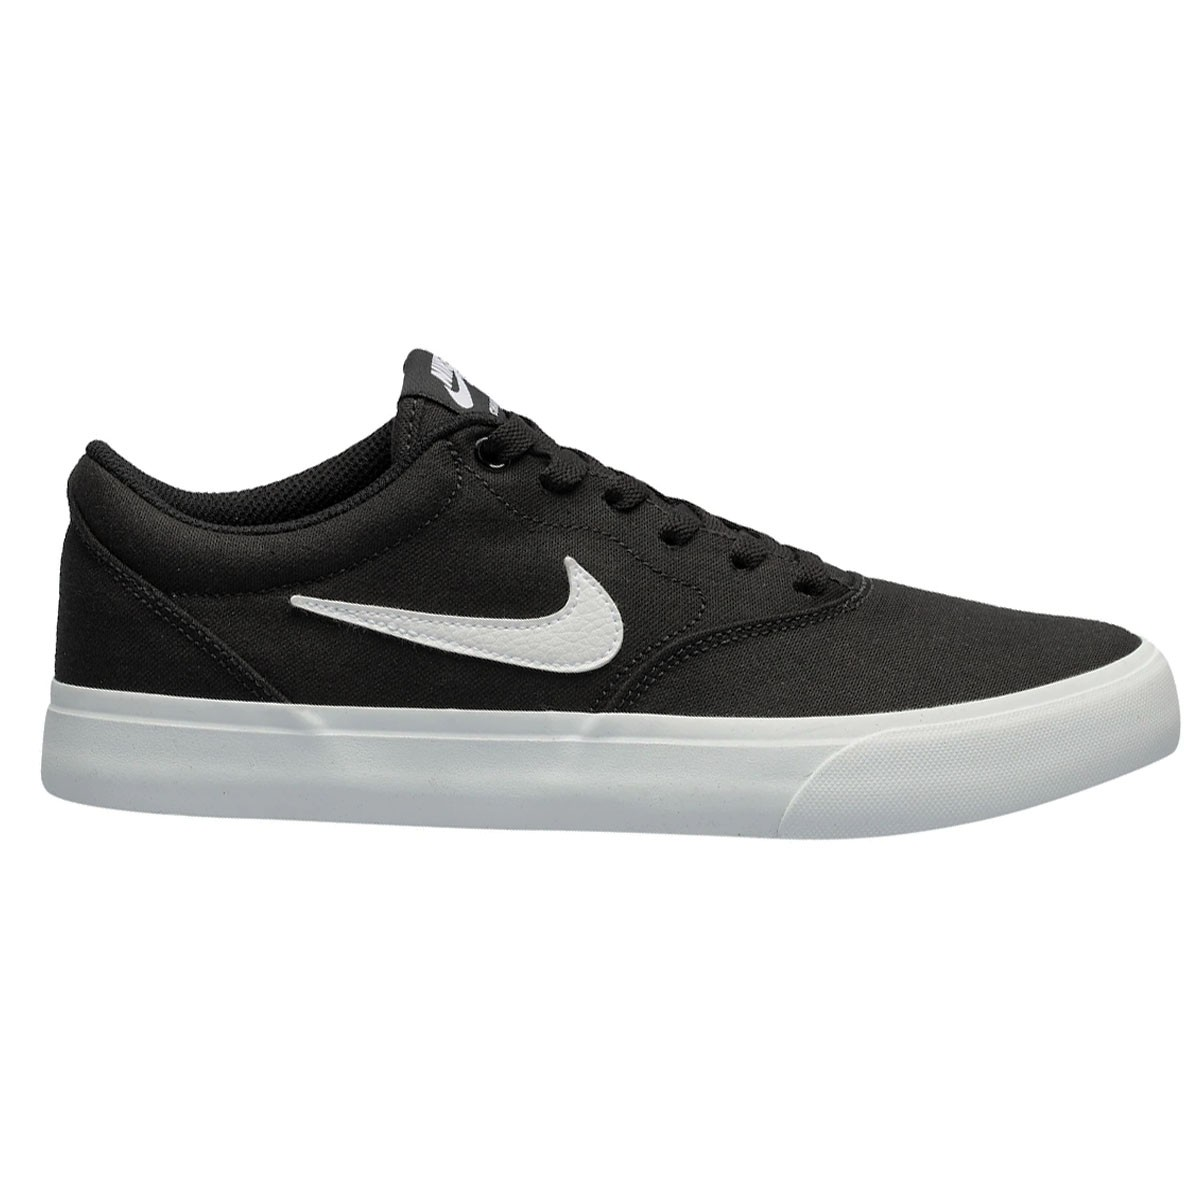 Tênis Nike SB Charge Canvas Masculino